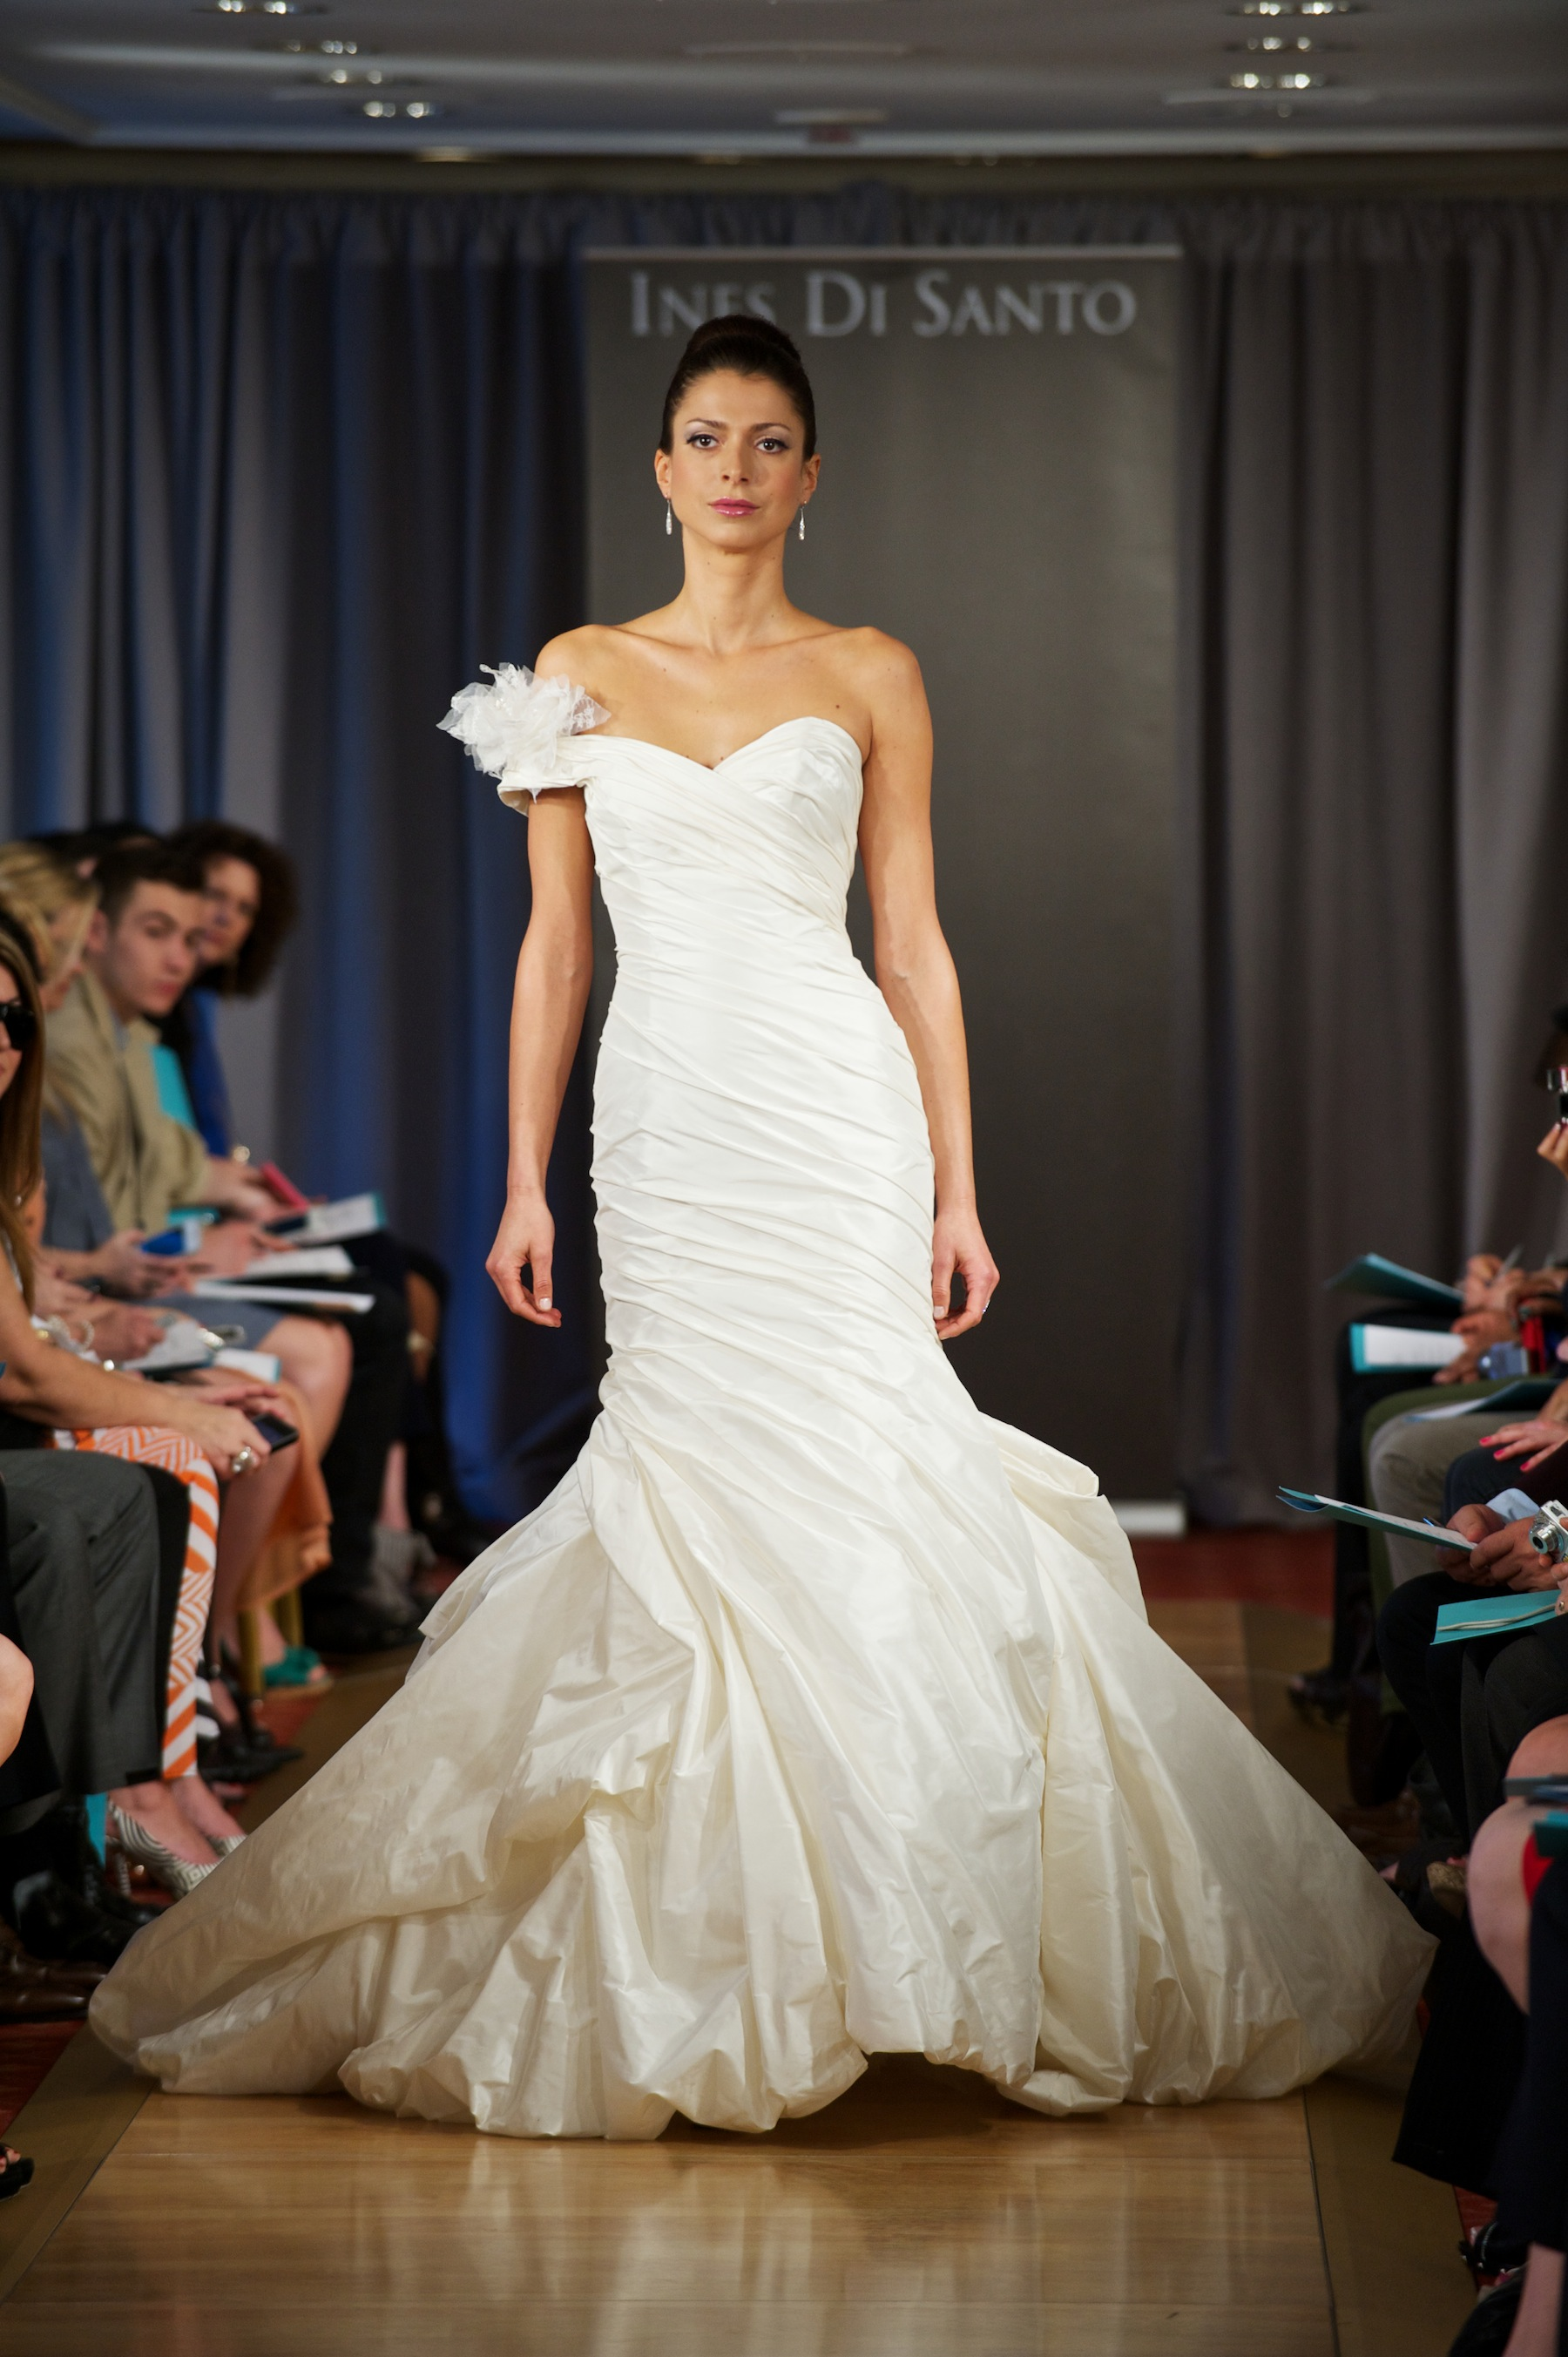 Wedding-dress-spring-2013-bridal-gowns-ines-di-santo-1.original